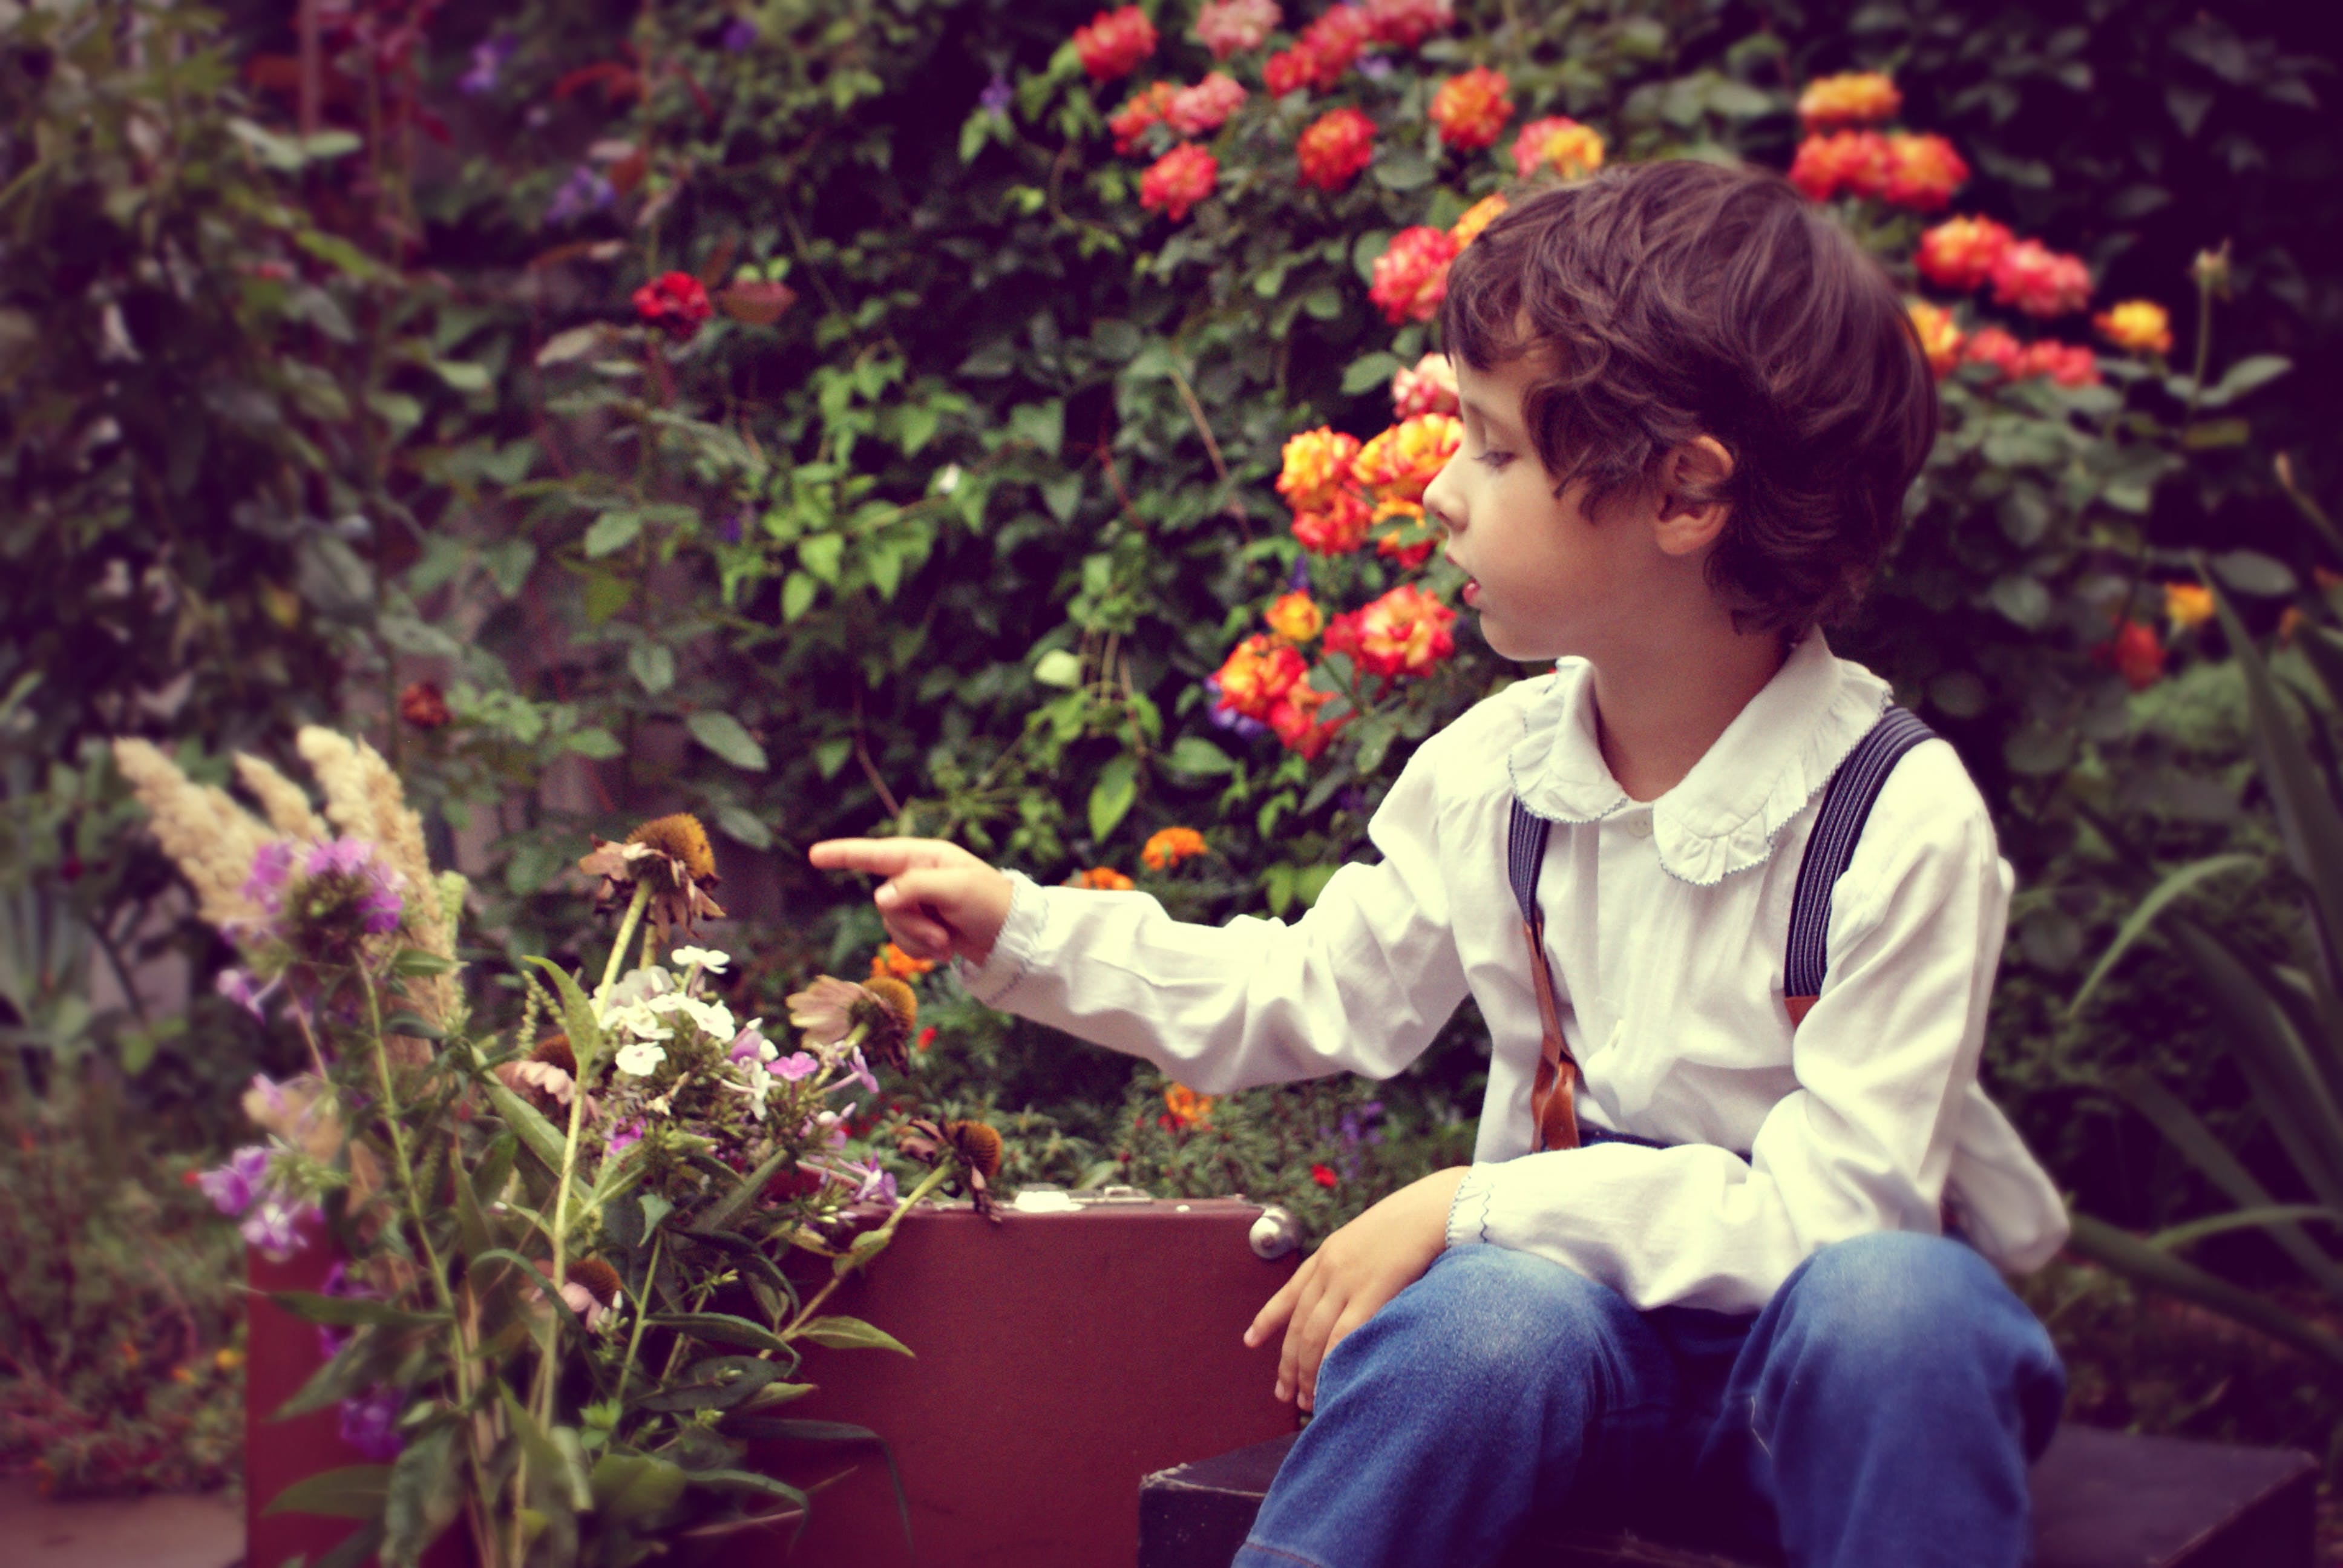 Photo of Boy Sitting and Touch Flowers